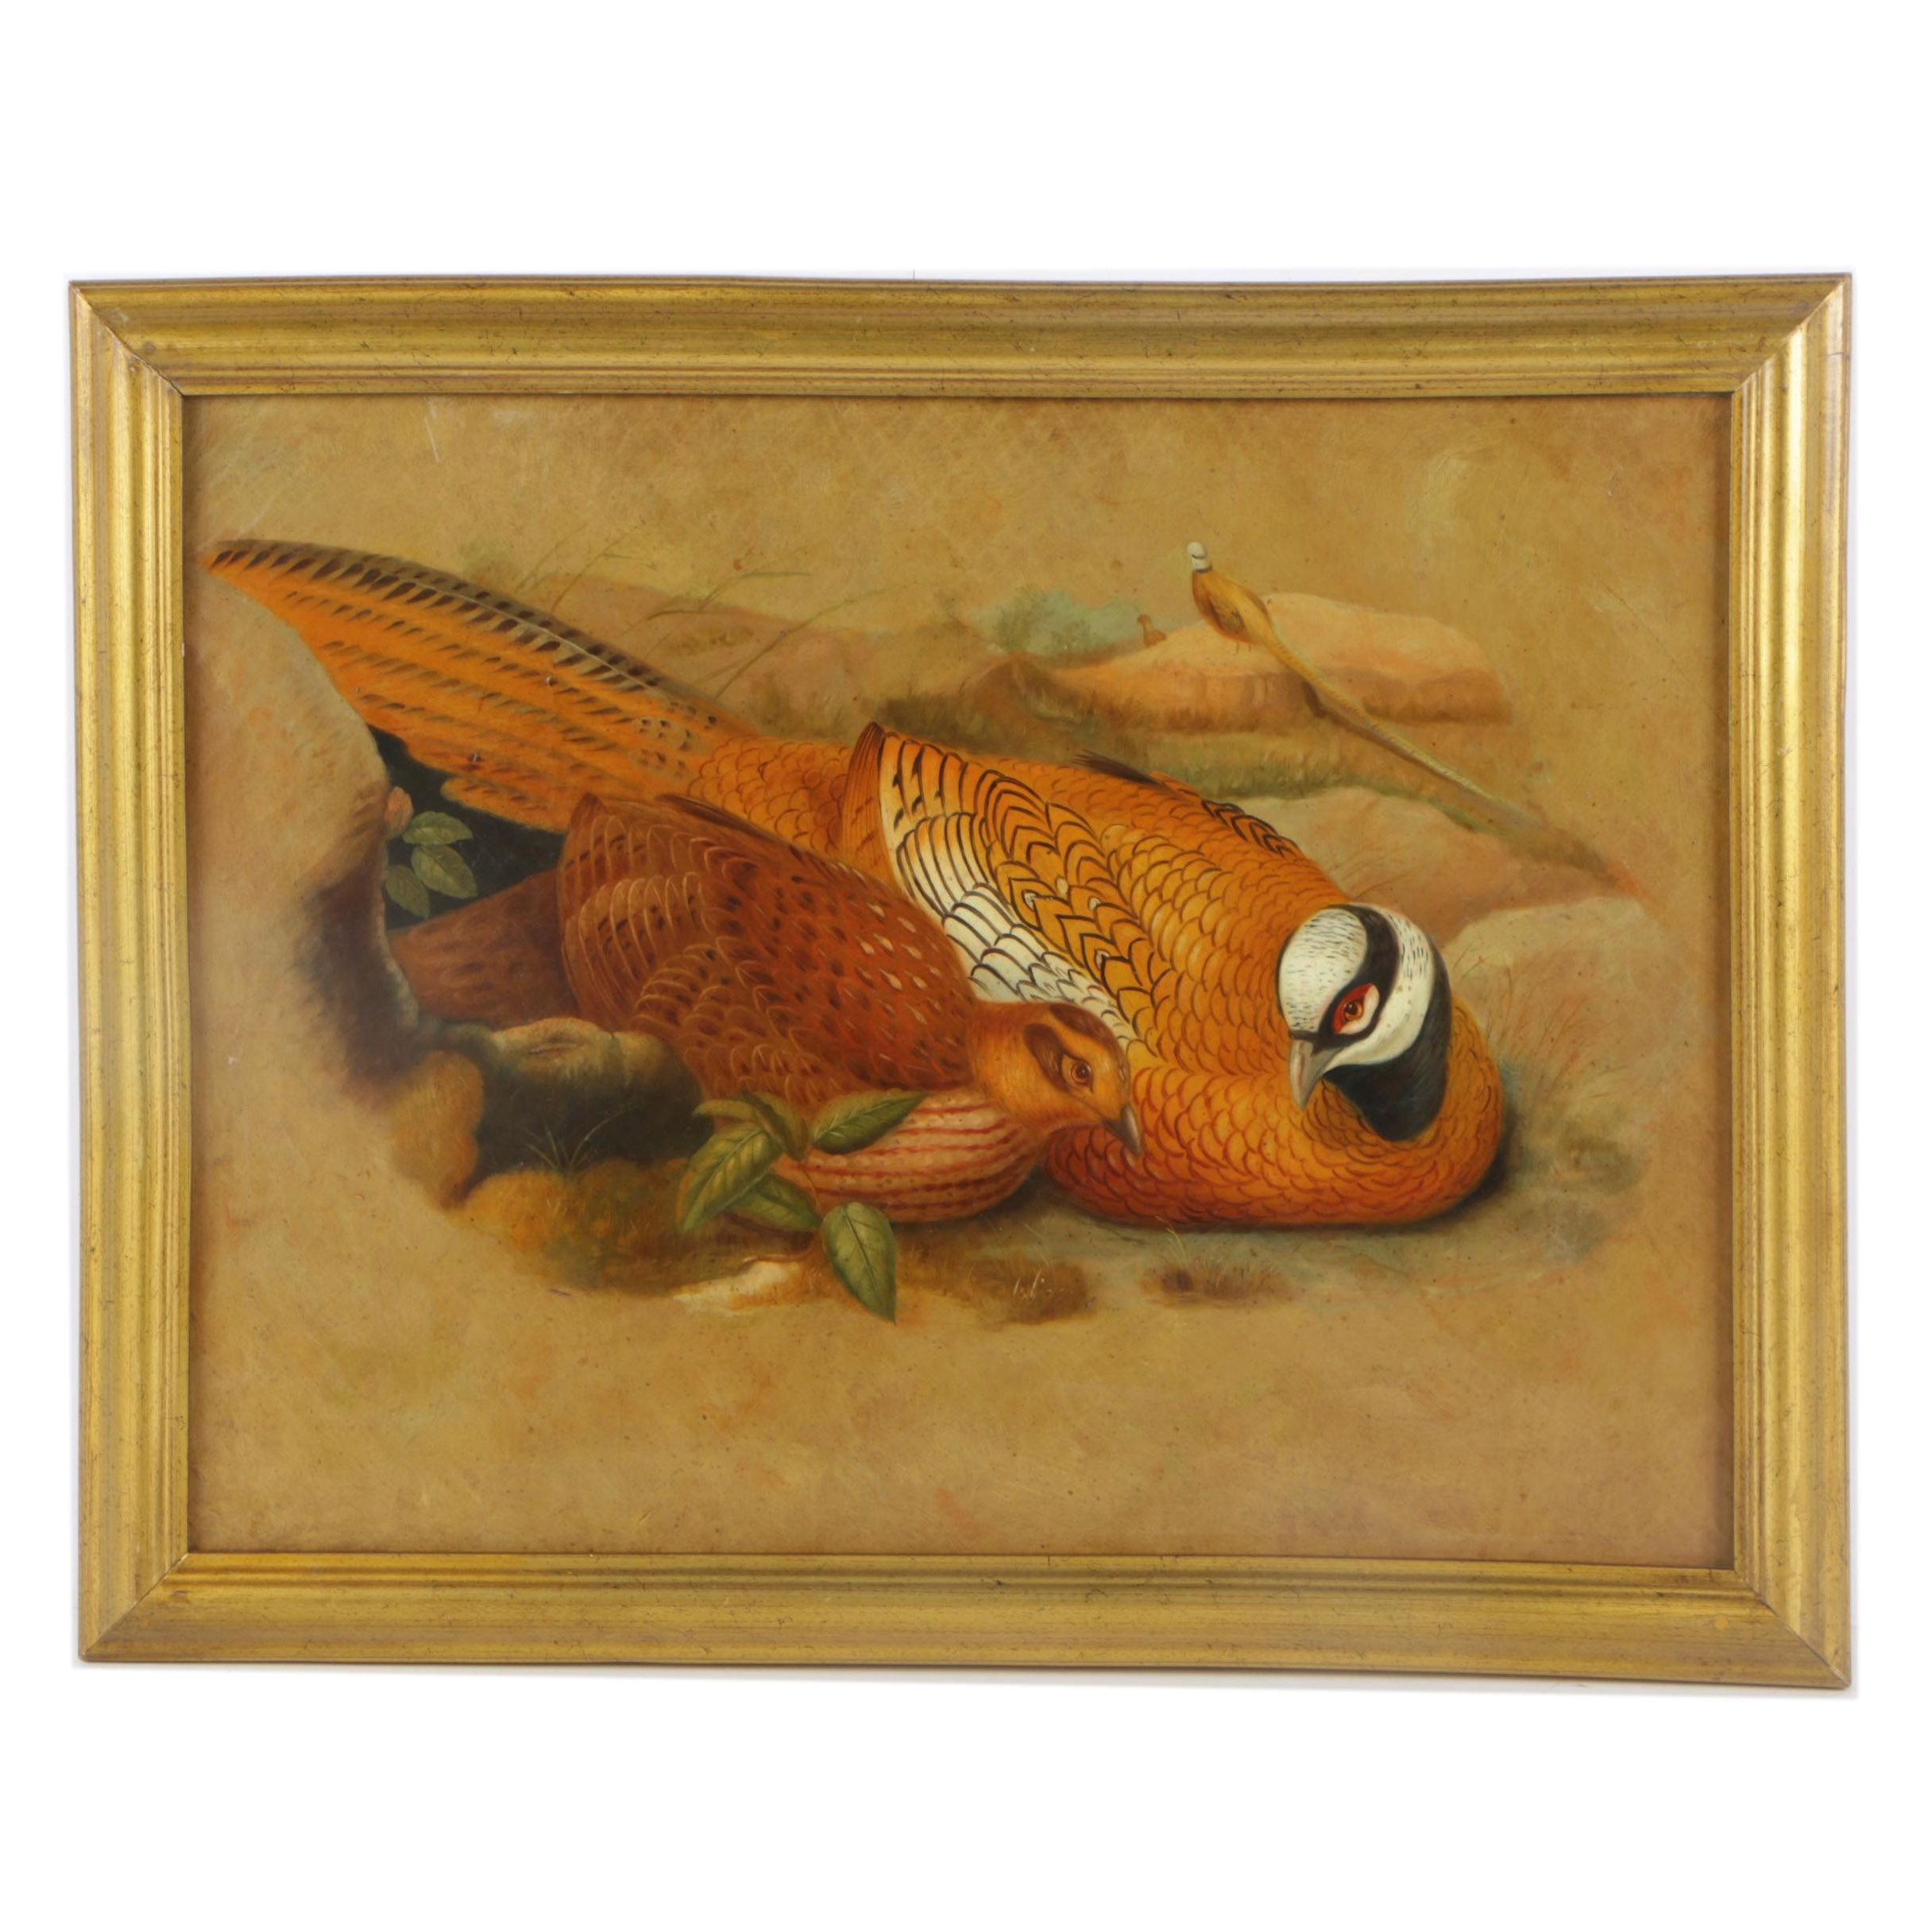 Oil Painting on Canvas of Reeves's Pheasants